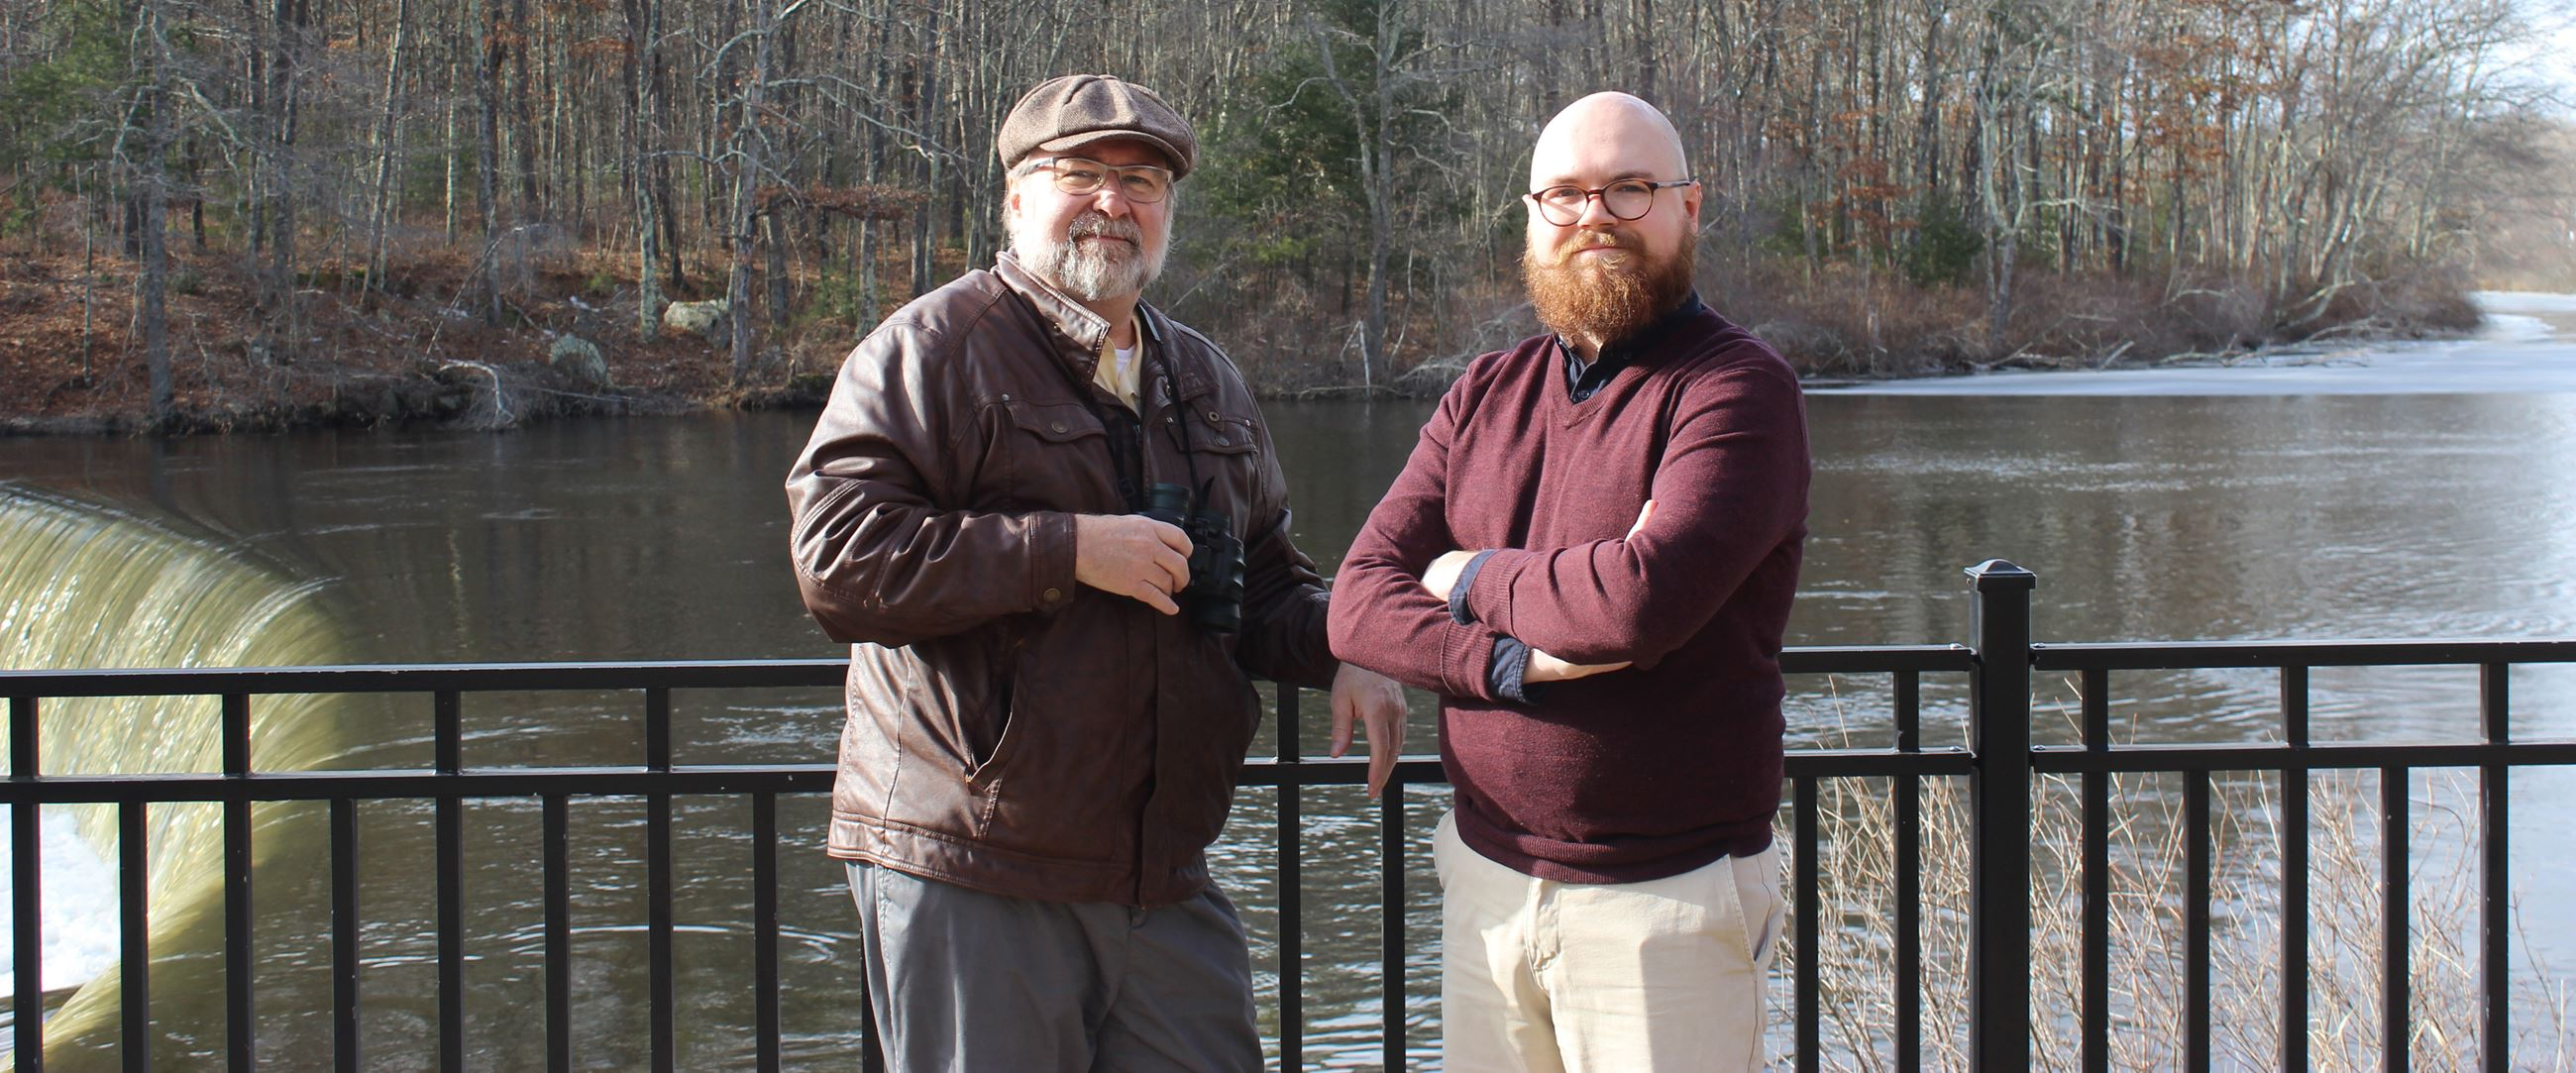 Photo of two men standing in front of a black railing, pond or river in the background